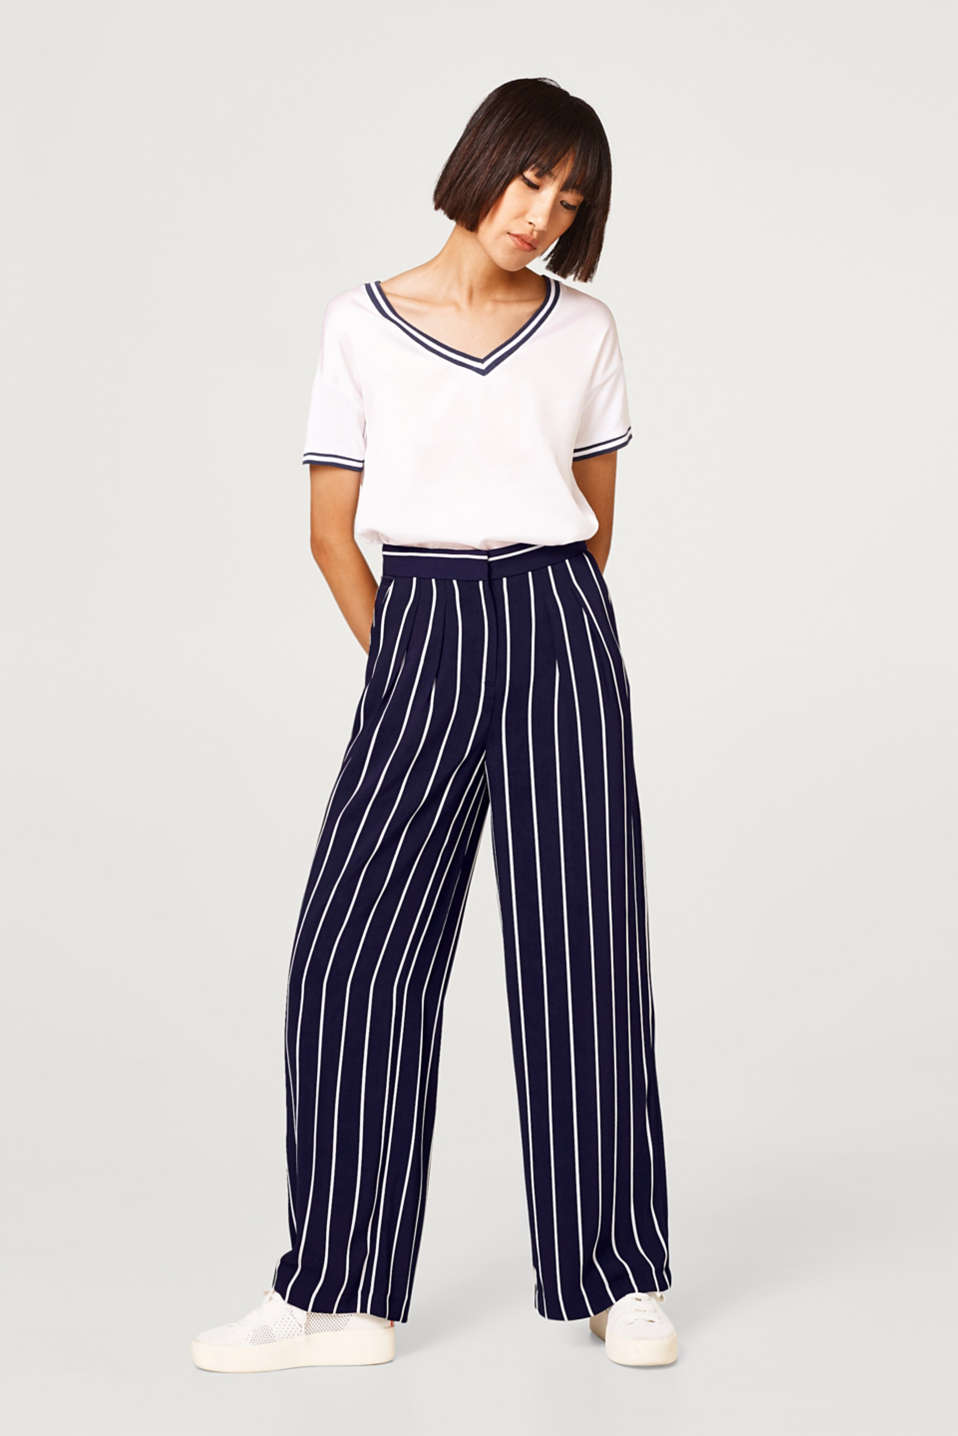 Esprit - Flowing striped trousers with extra wide legs